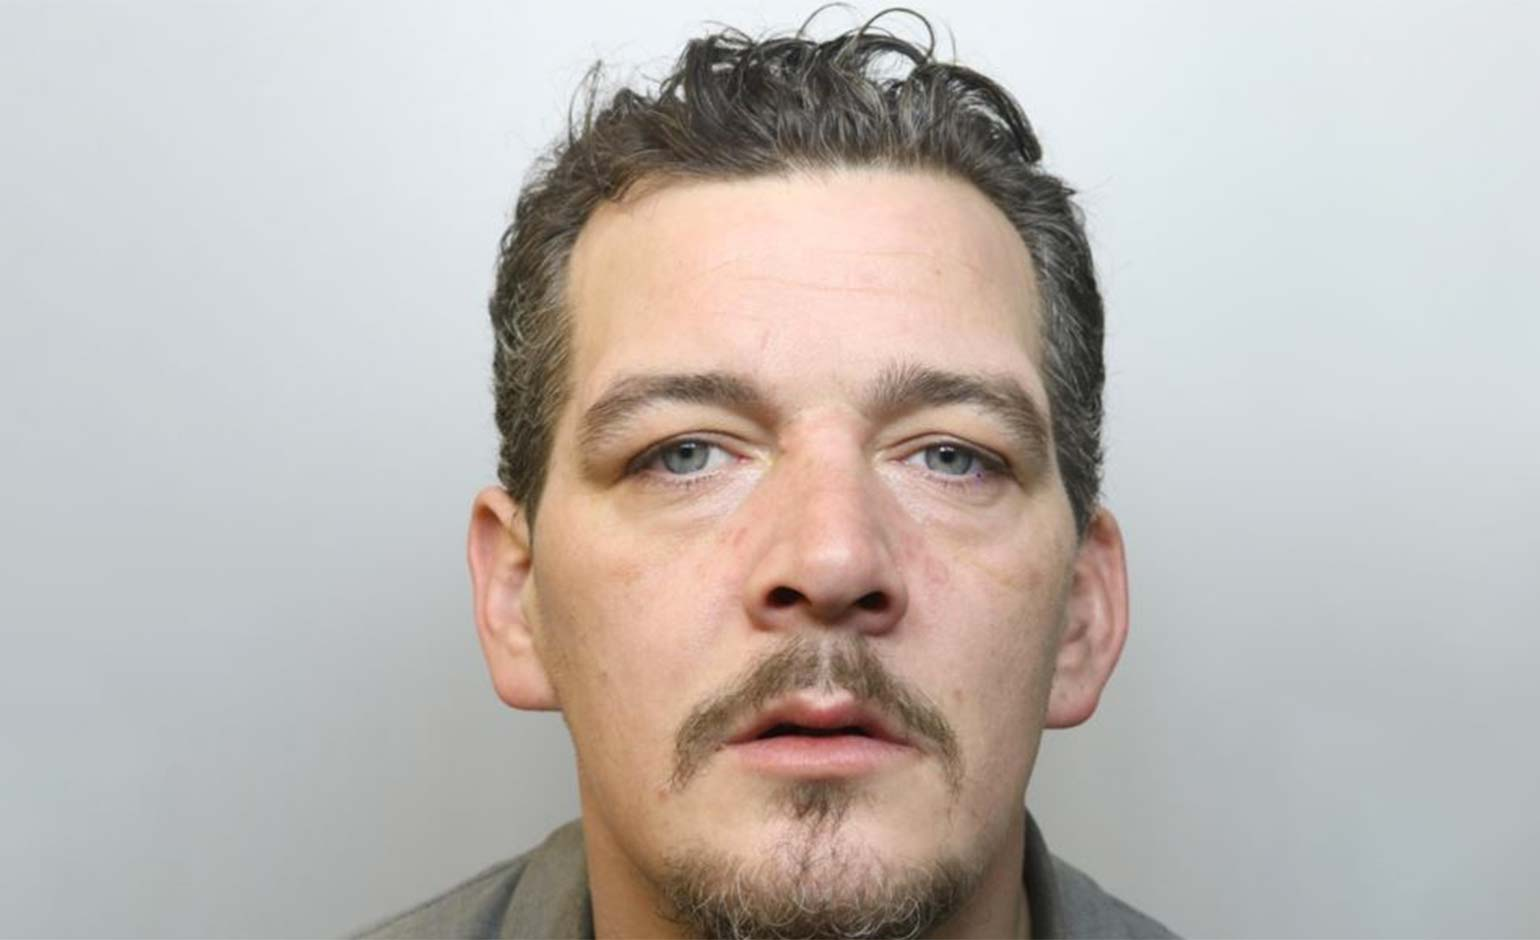 Bath man jailed for 26 weeks after breaching suspended sentence order